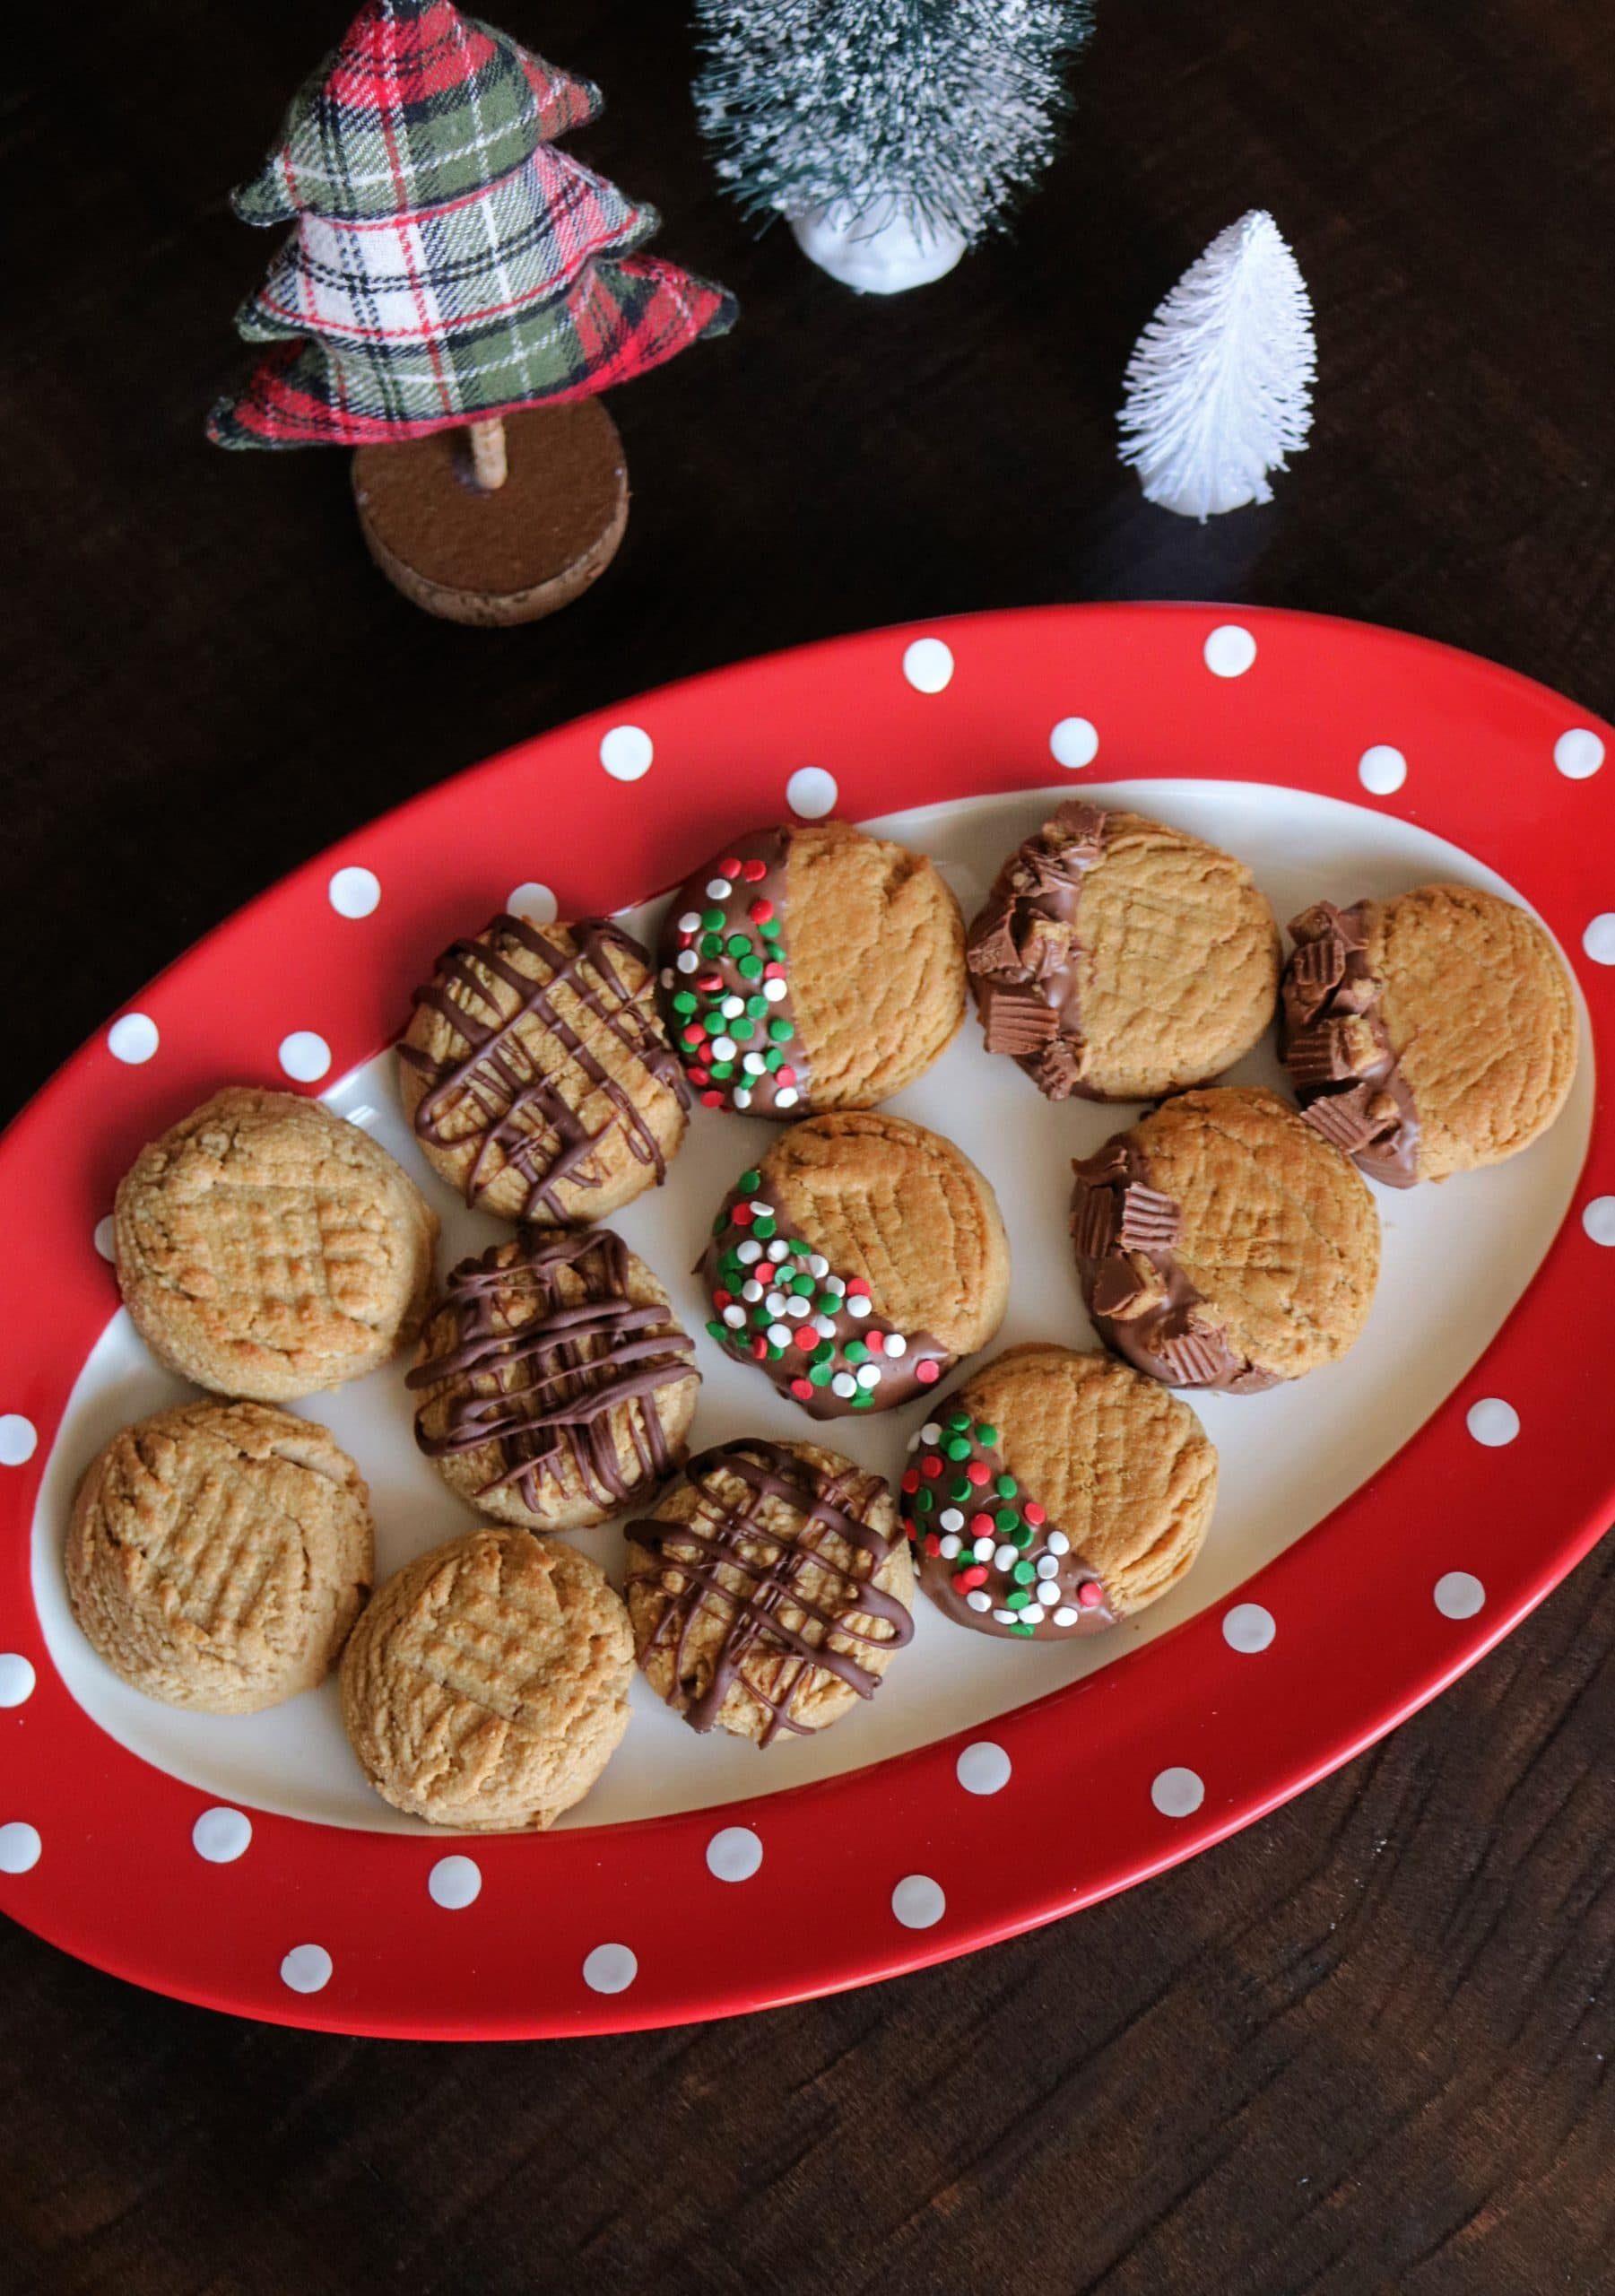 These delicious peanut butter Christmas cookies are a peanut butter lovers favorite cookie and perfect for cookie exchanges. Decorate these peanut butter cookies with chocolate, sprinkles, peanut butter cups, and more! #peanutbuttercookies #christmascookies #peanutbutter #cookies #christmasbaking